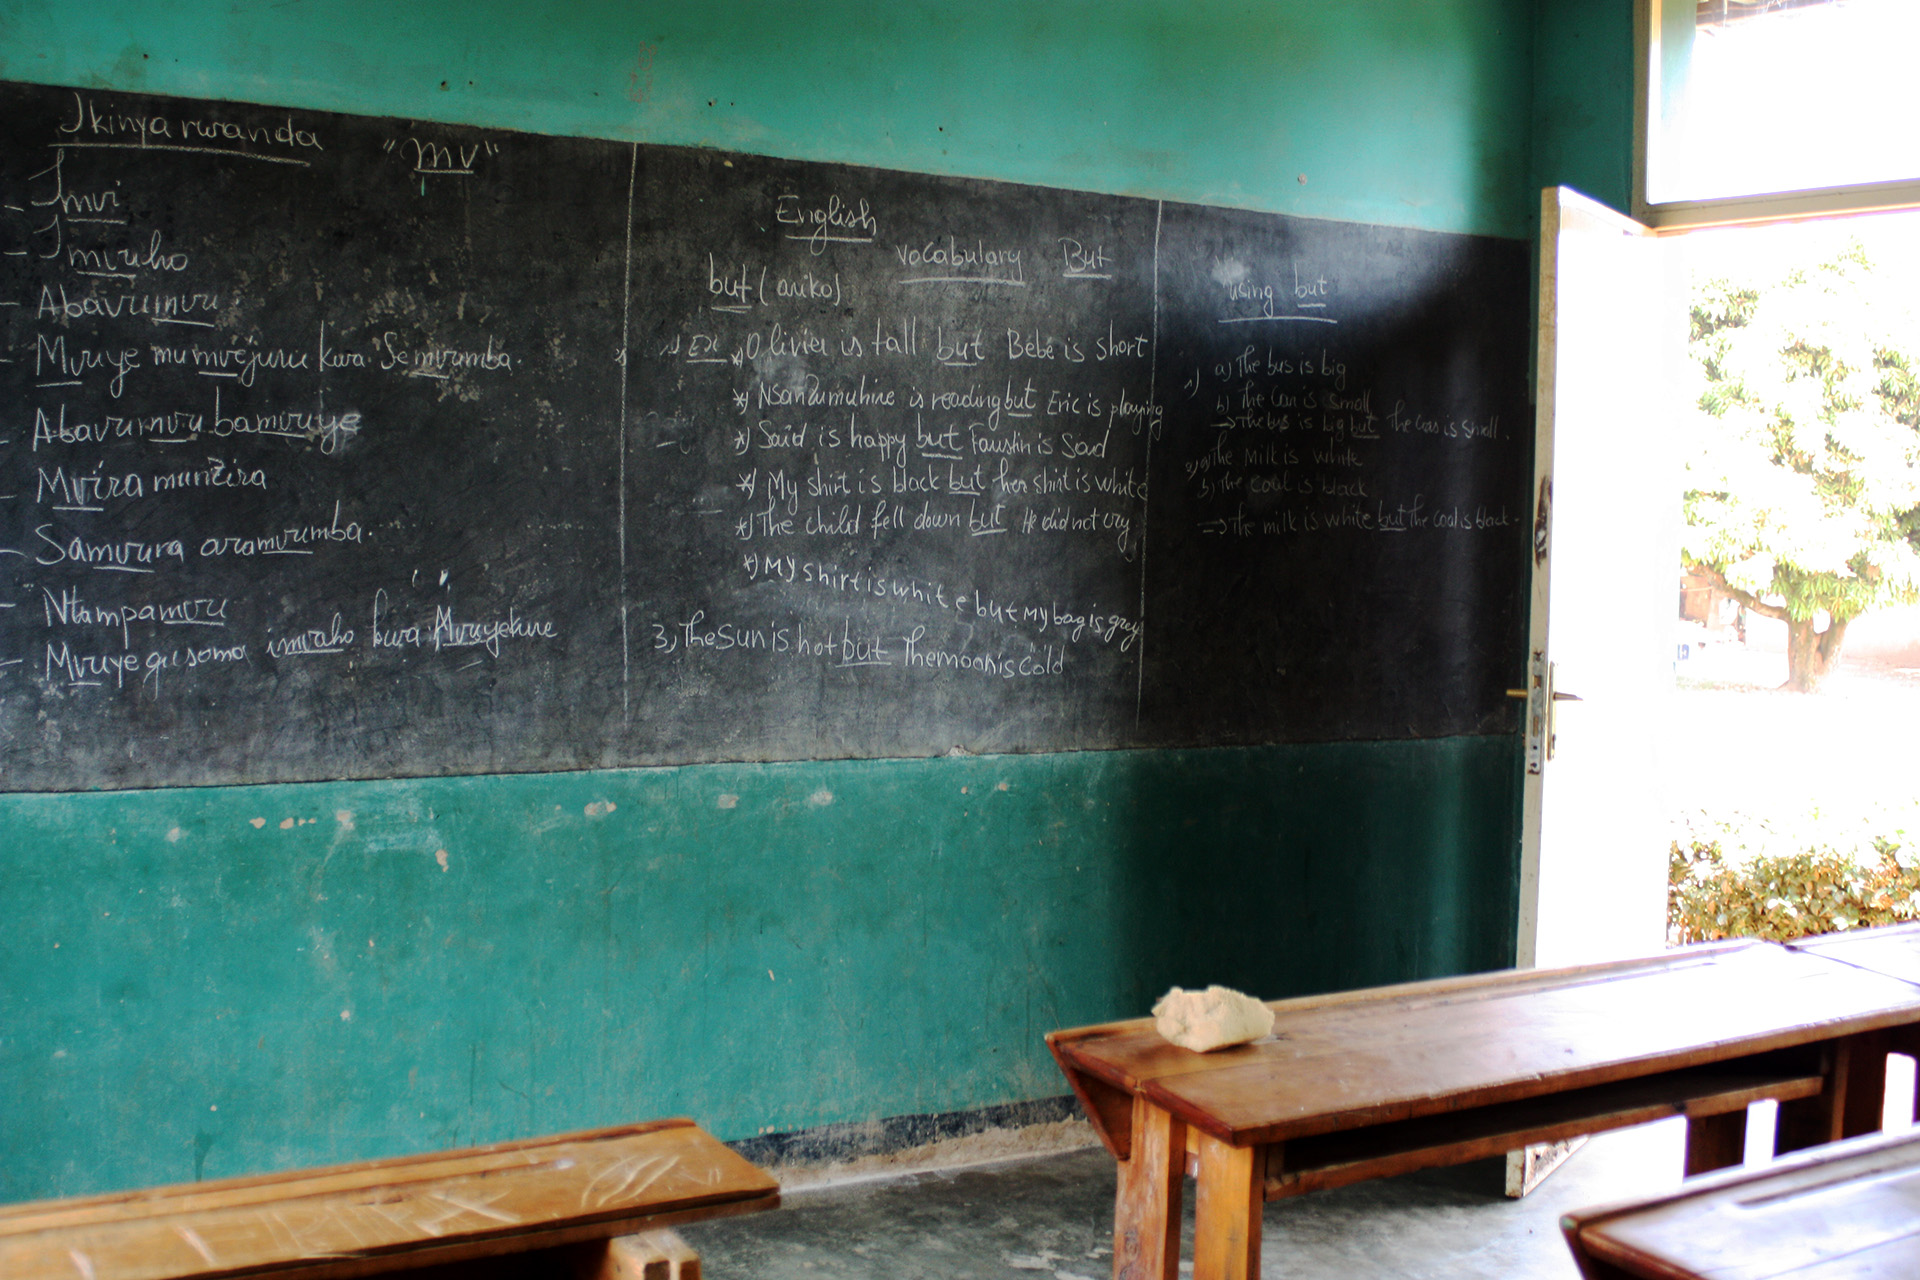 One of the teaching classrooms.